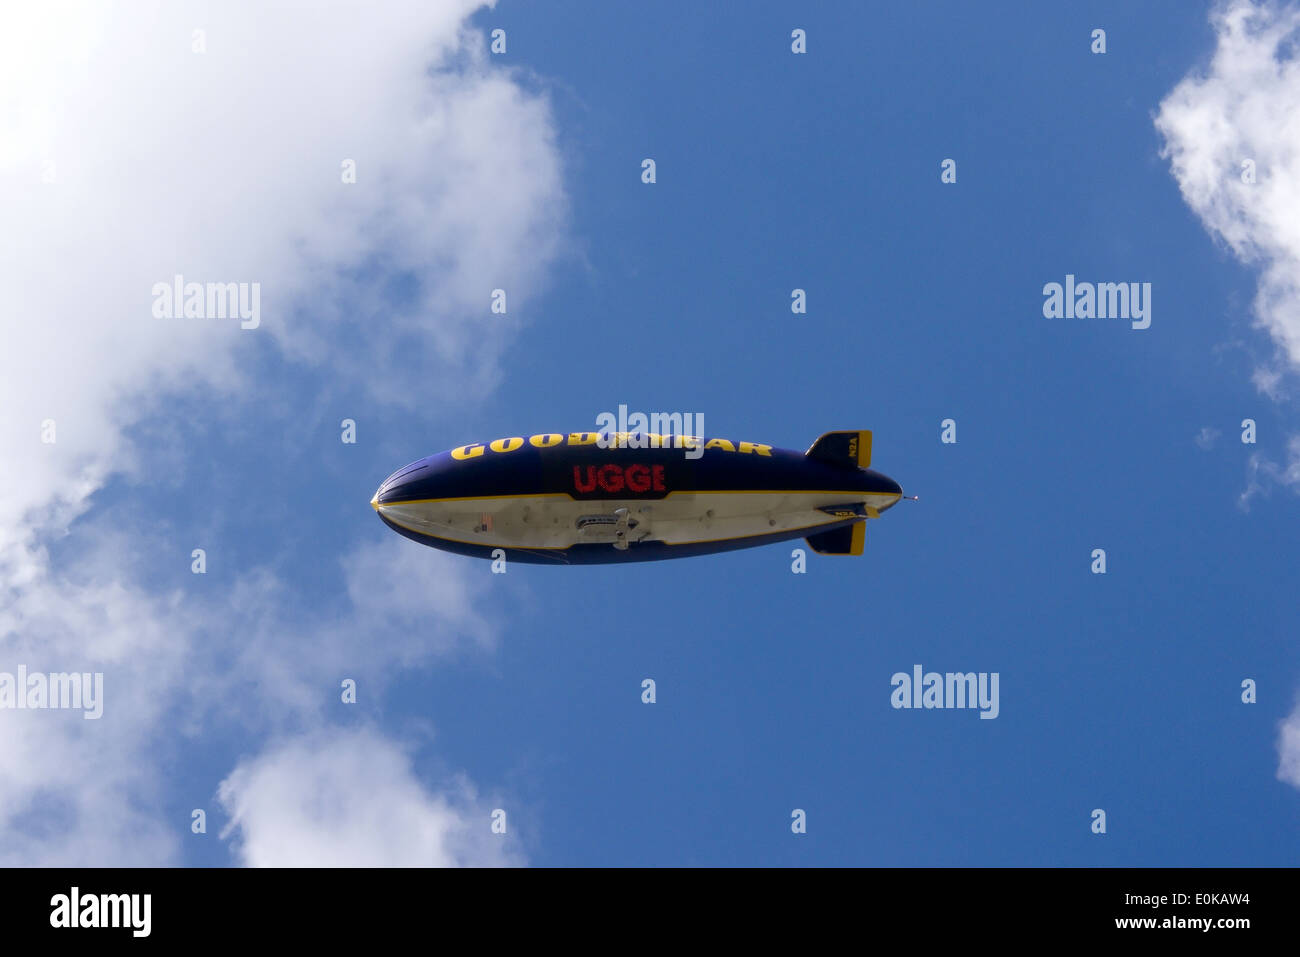 The goodyear blimp - Stock Image